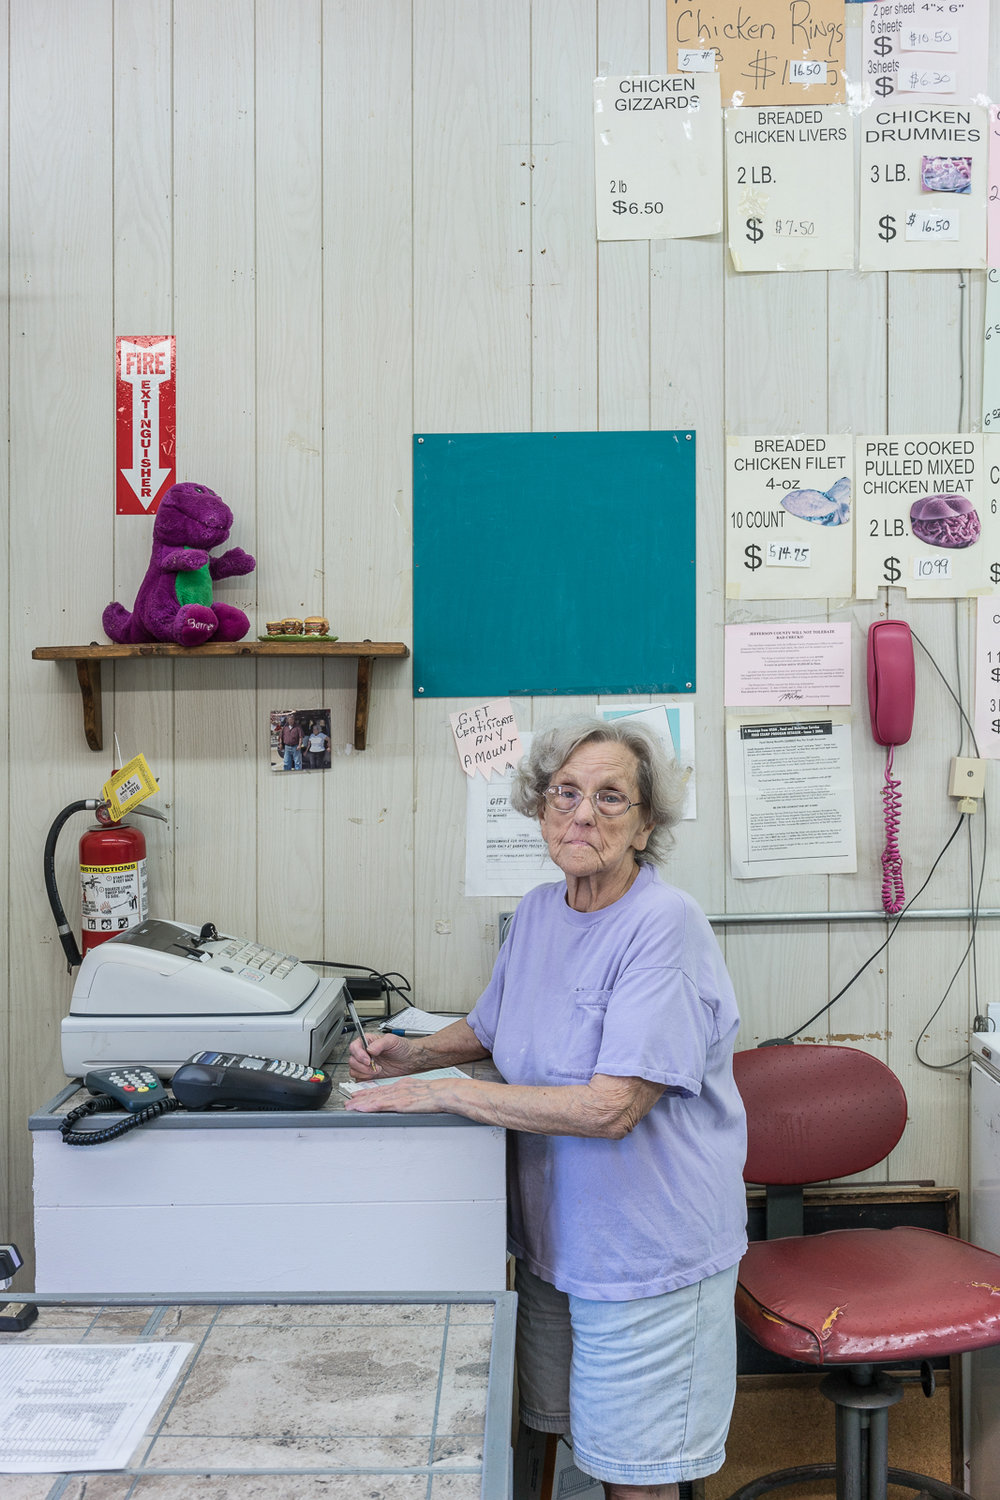 Juanita at the Frozen Foods Shop, De Soto, Missouri, 2017 © Nate Larson